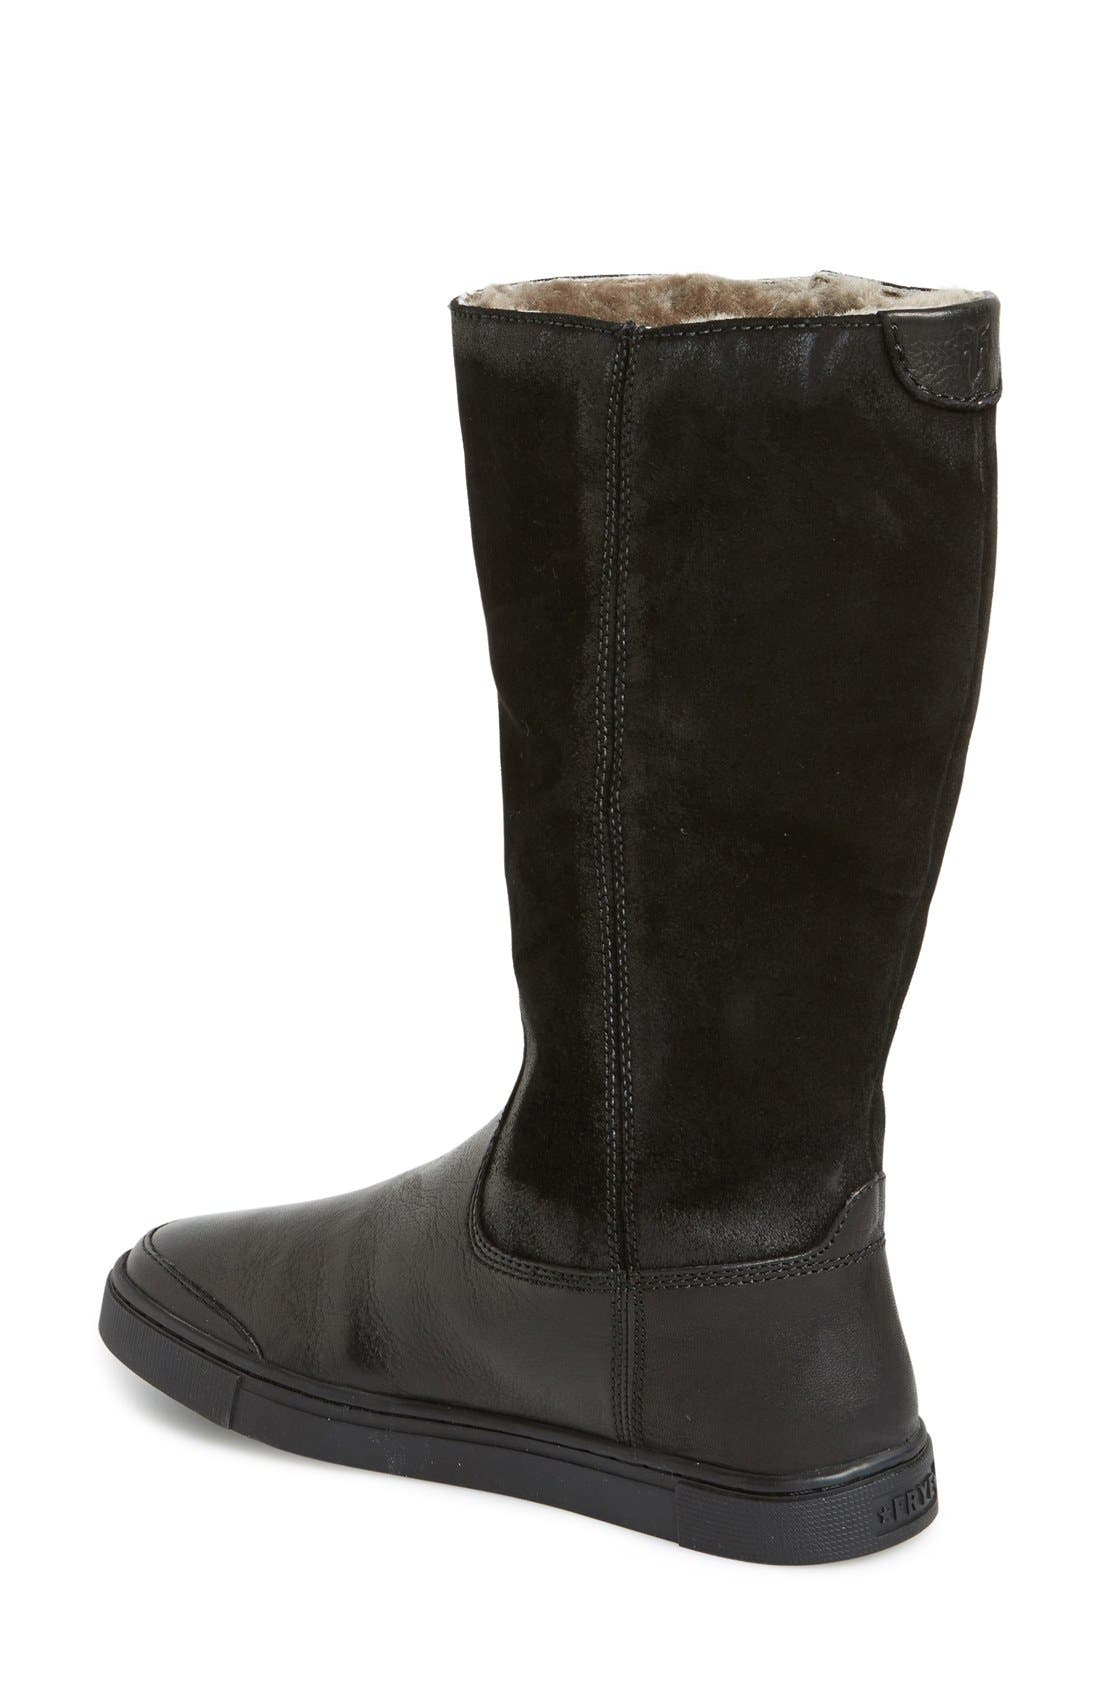 'Gemma' Tall Genuine Shearling Lined Boot,                             Alternate thumbnail 4, color,                             001